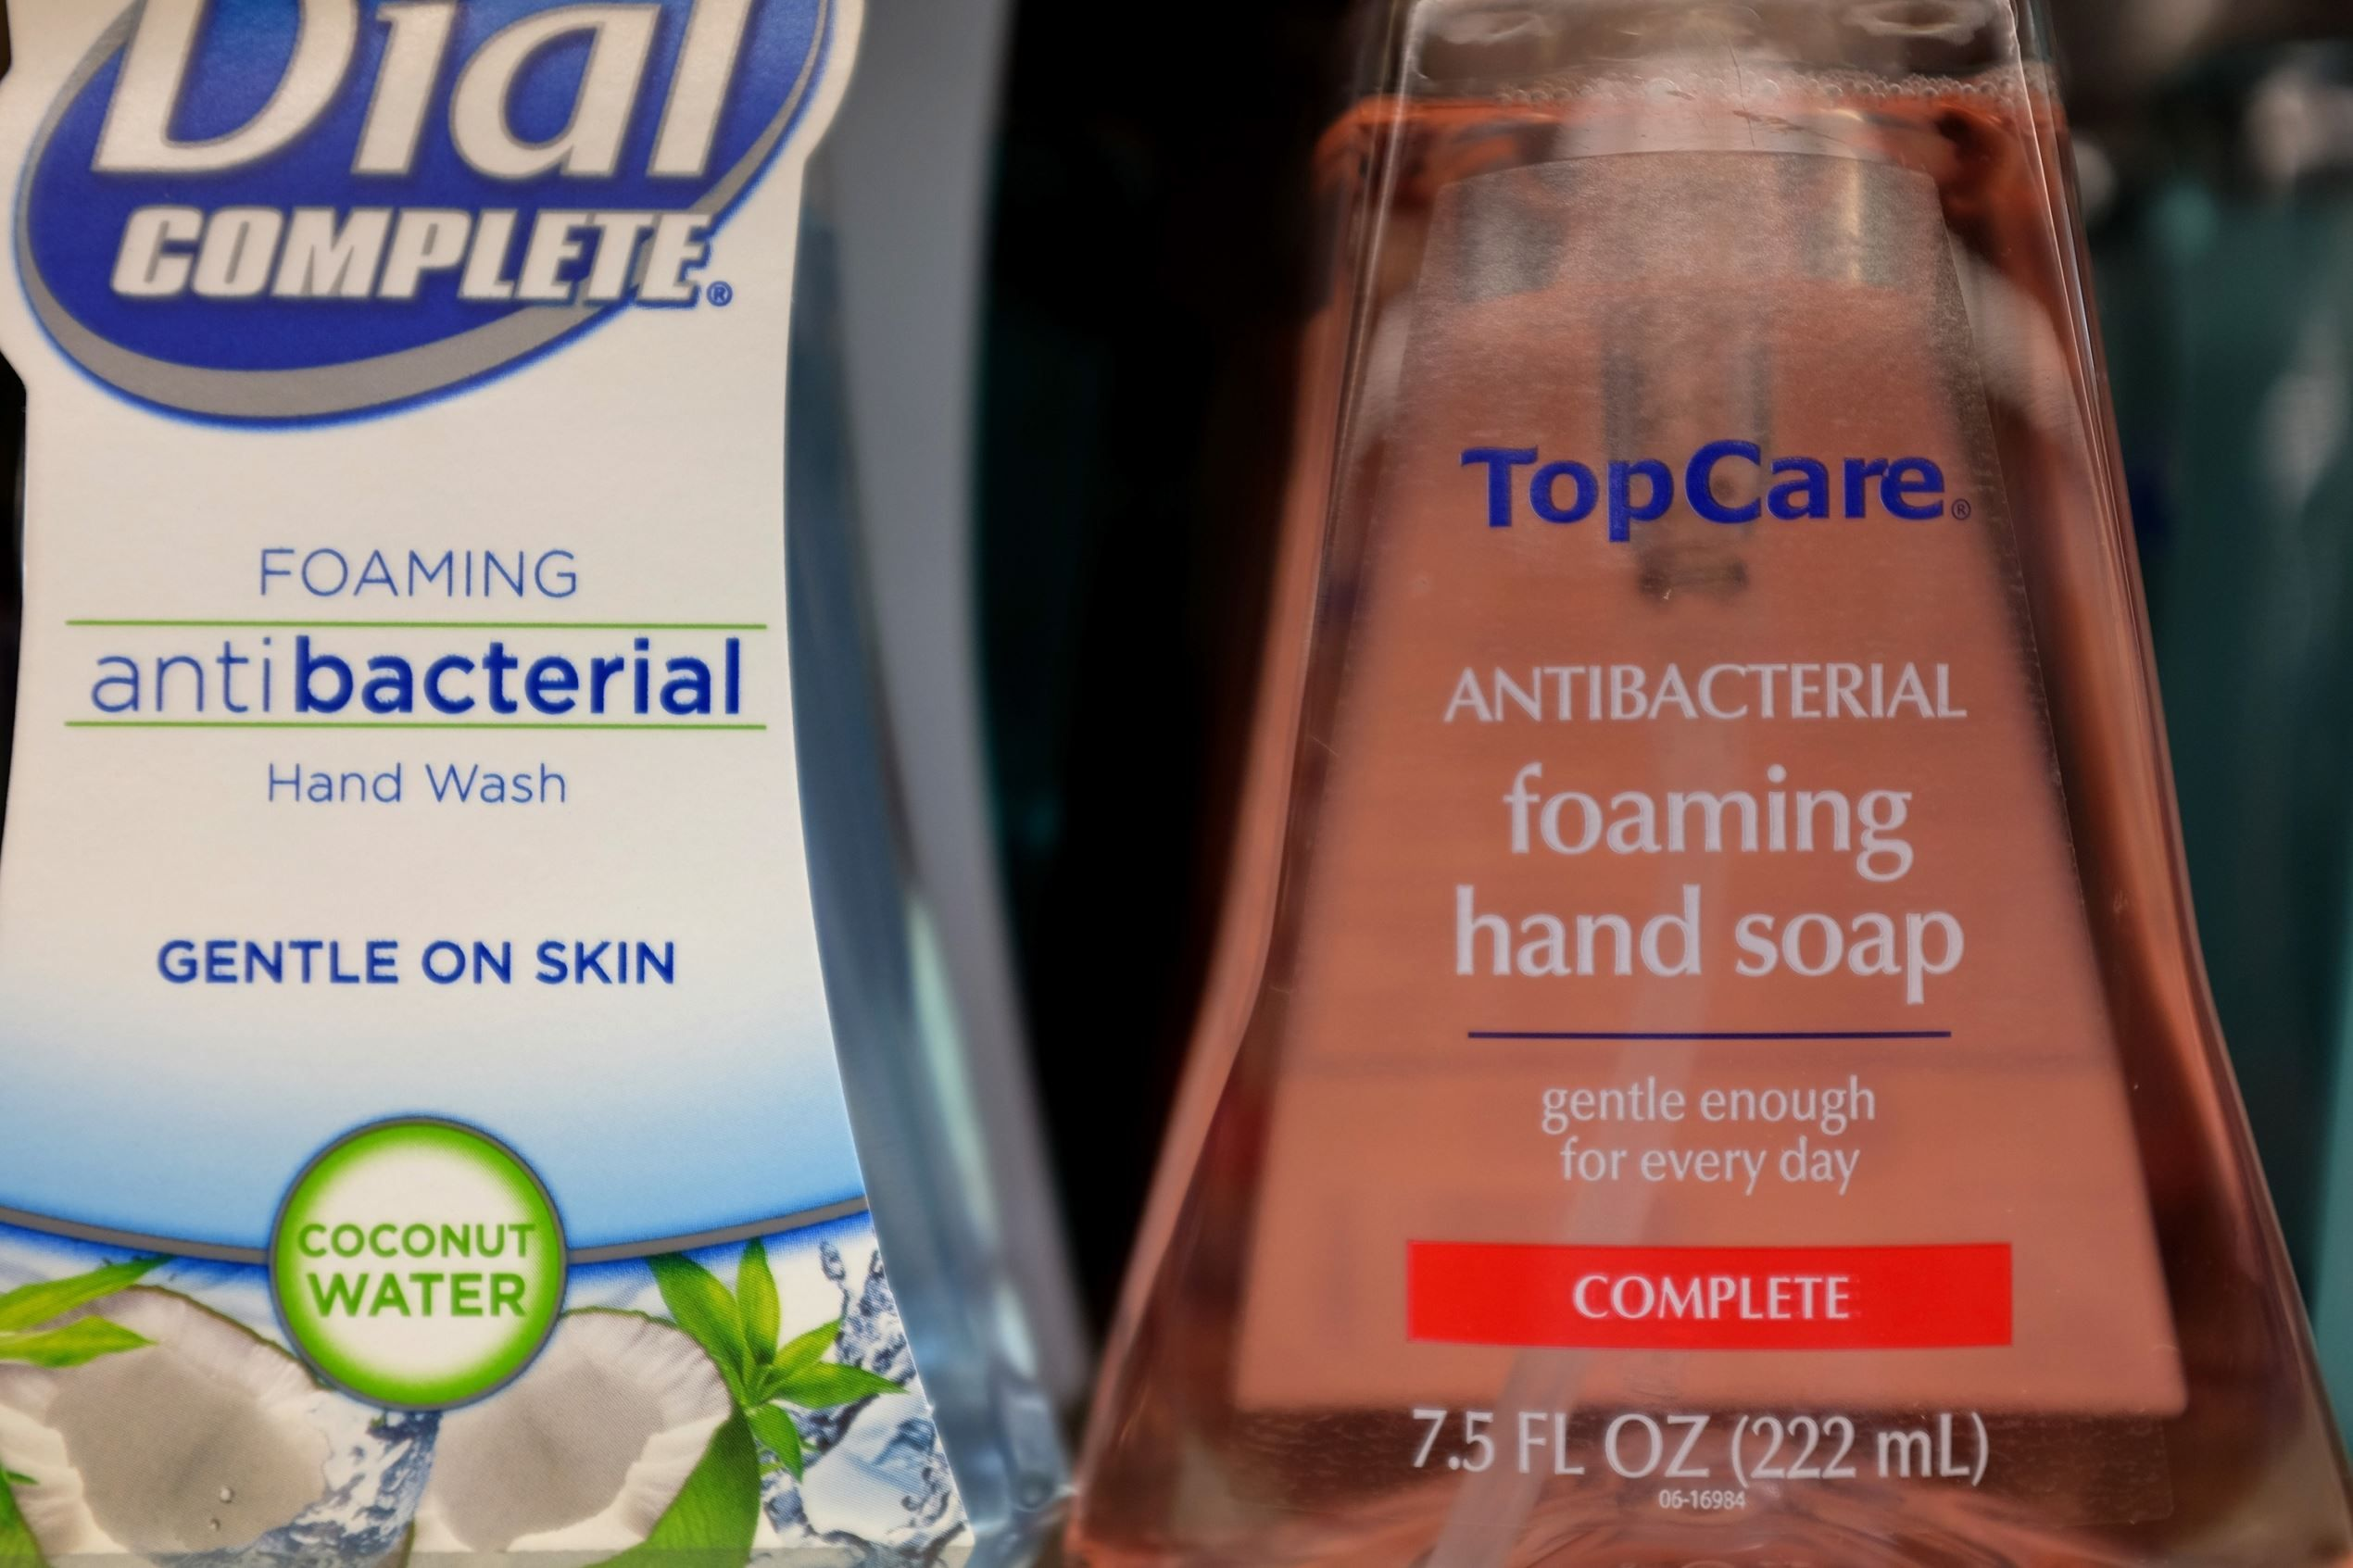 Beauty Formulas Antibacterial Soap For Hands Aloe Vera And